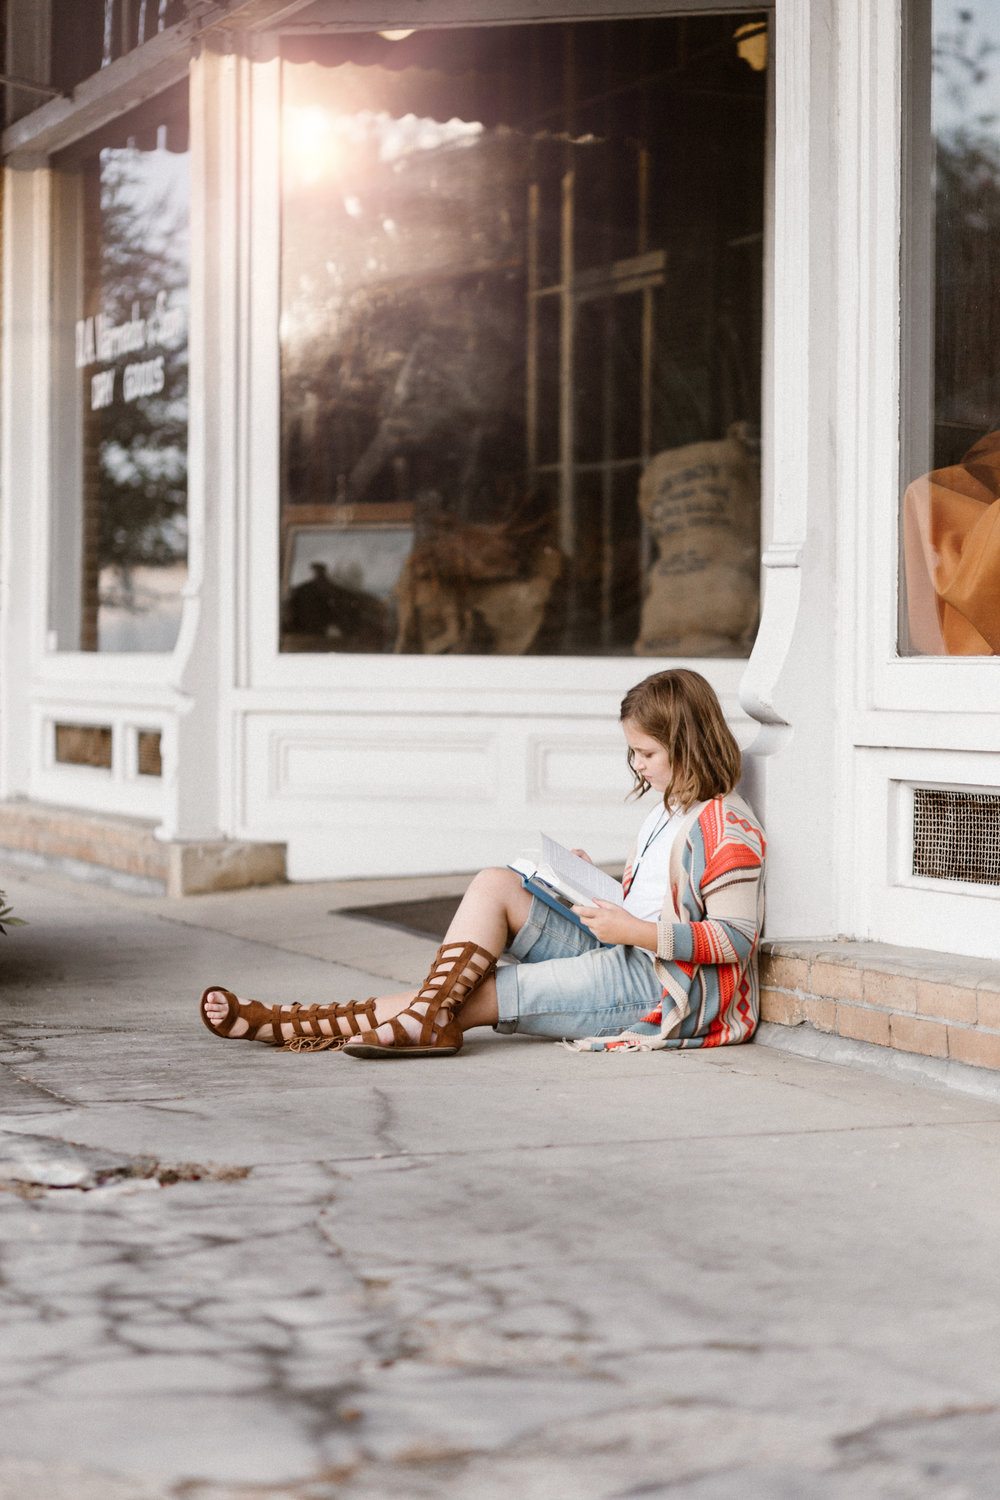 The sunset captured in the window of the DA Varnado Museum in Franklinton, Louisiana enhances the magic of reading during a recent Franklinton, Louisiana tween photo session by Chris Ginn Photography.